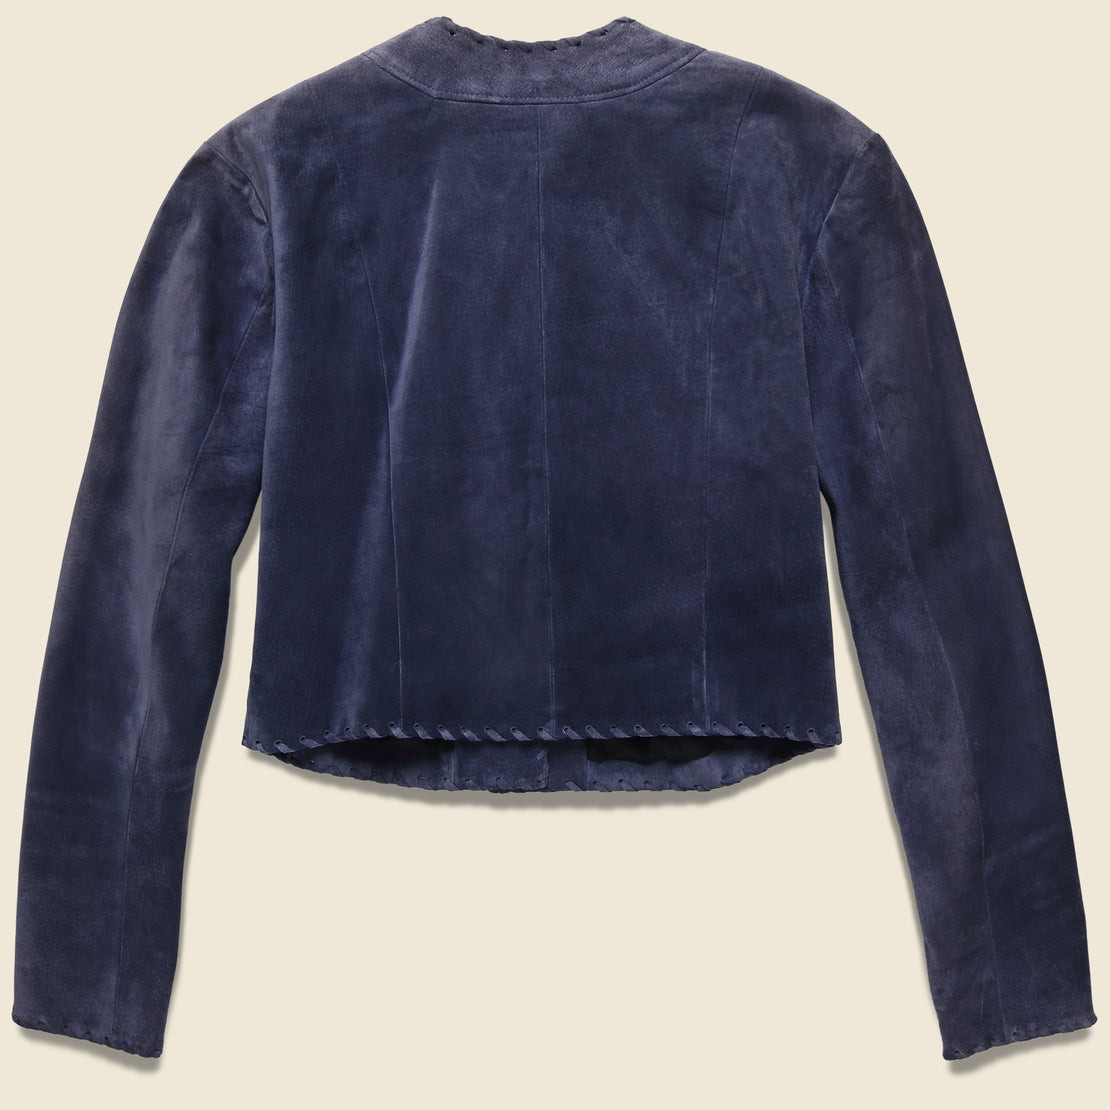 Santa Fe Suede Western Cropped Coat - Dusty Blue